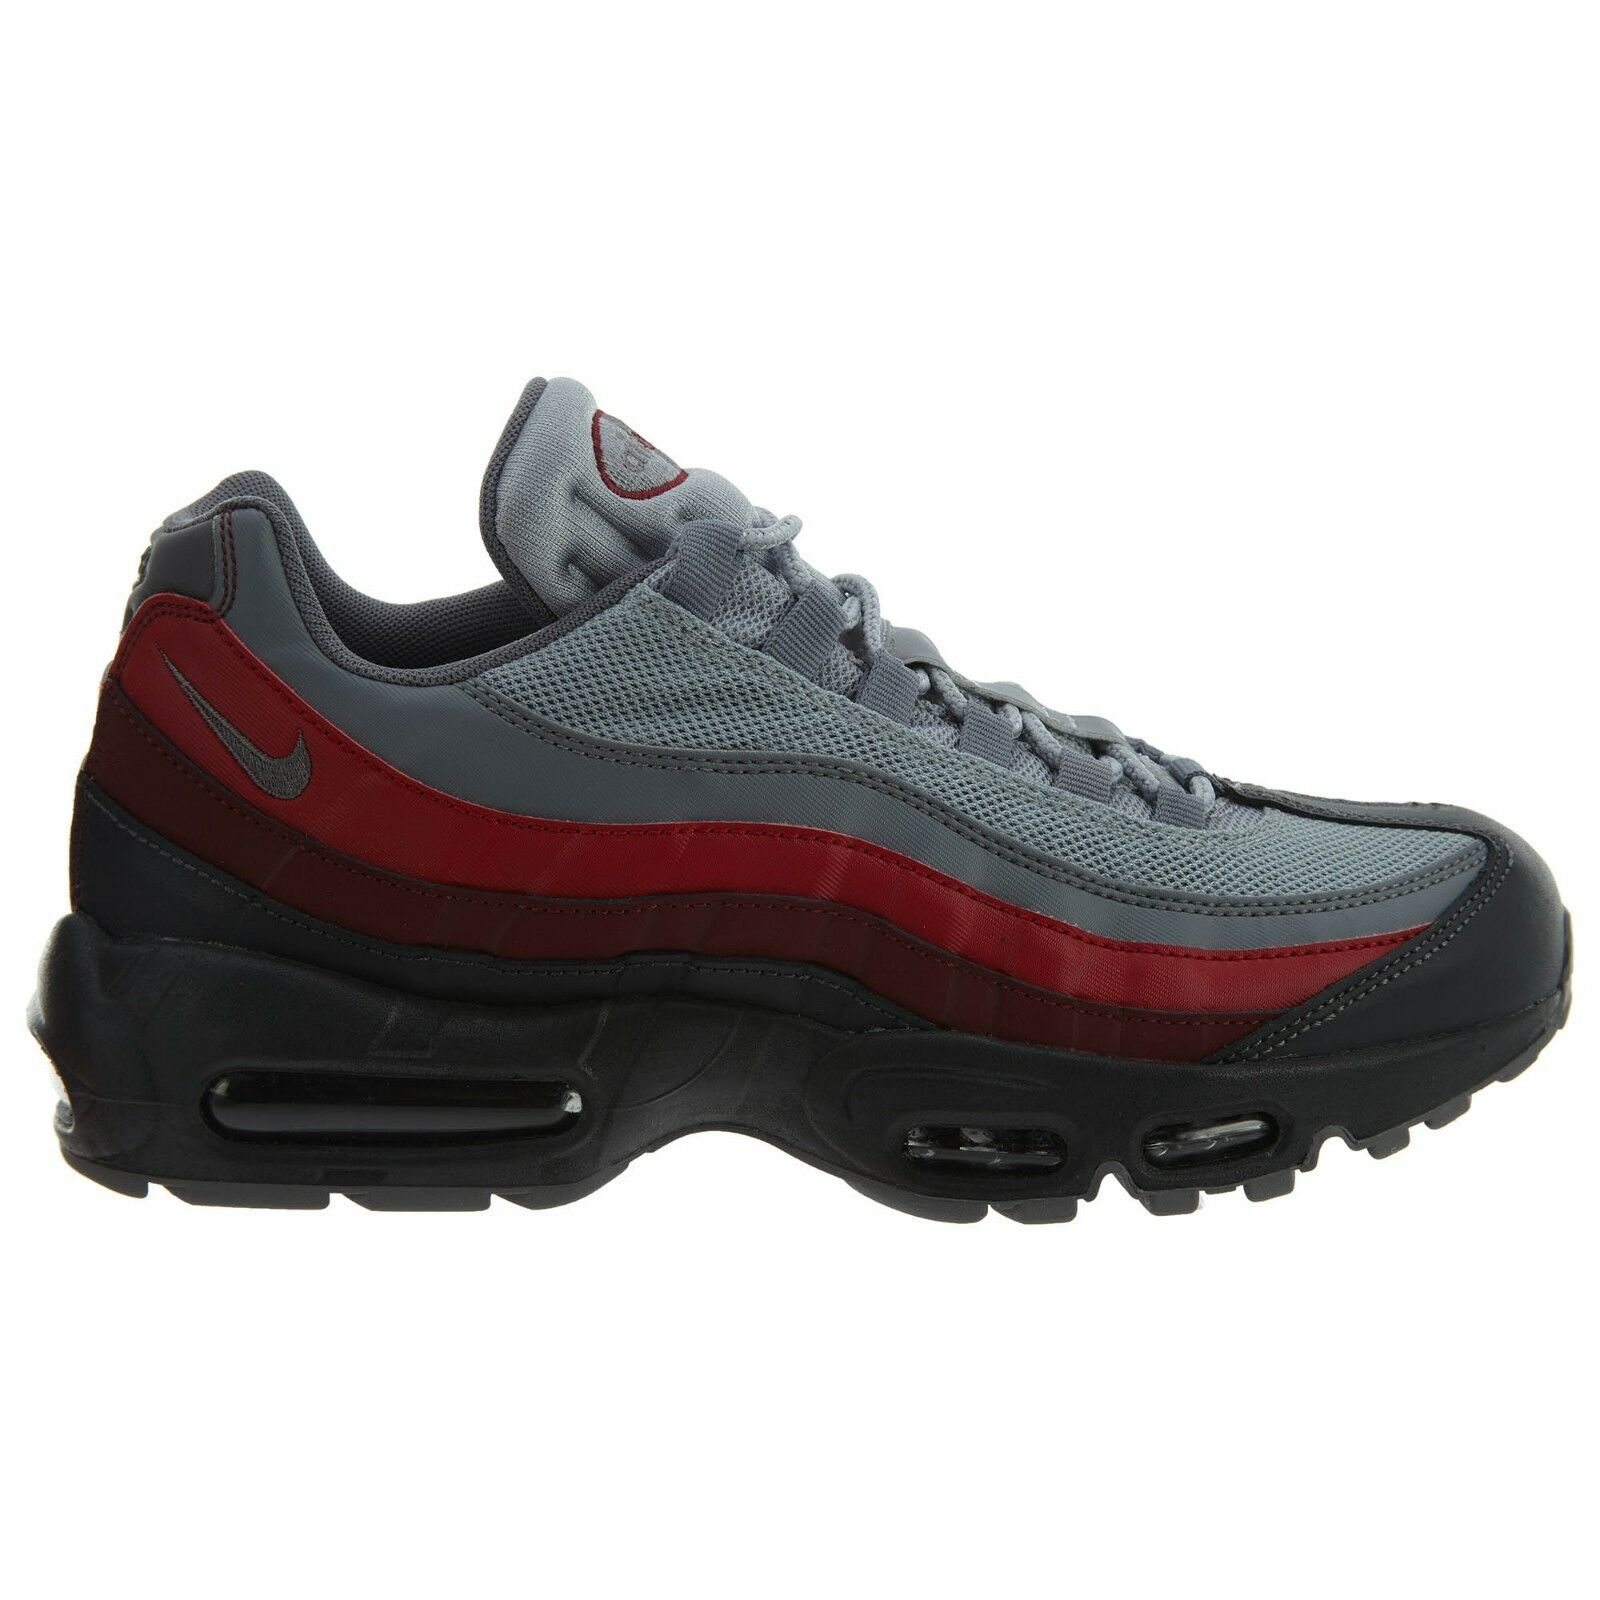 Nike Air Max 95 Essential Cool Mens 749766-025 Cool Essential Grey Red Running Shoes Size 9.5 e8427a